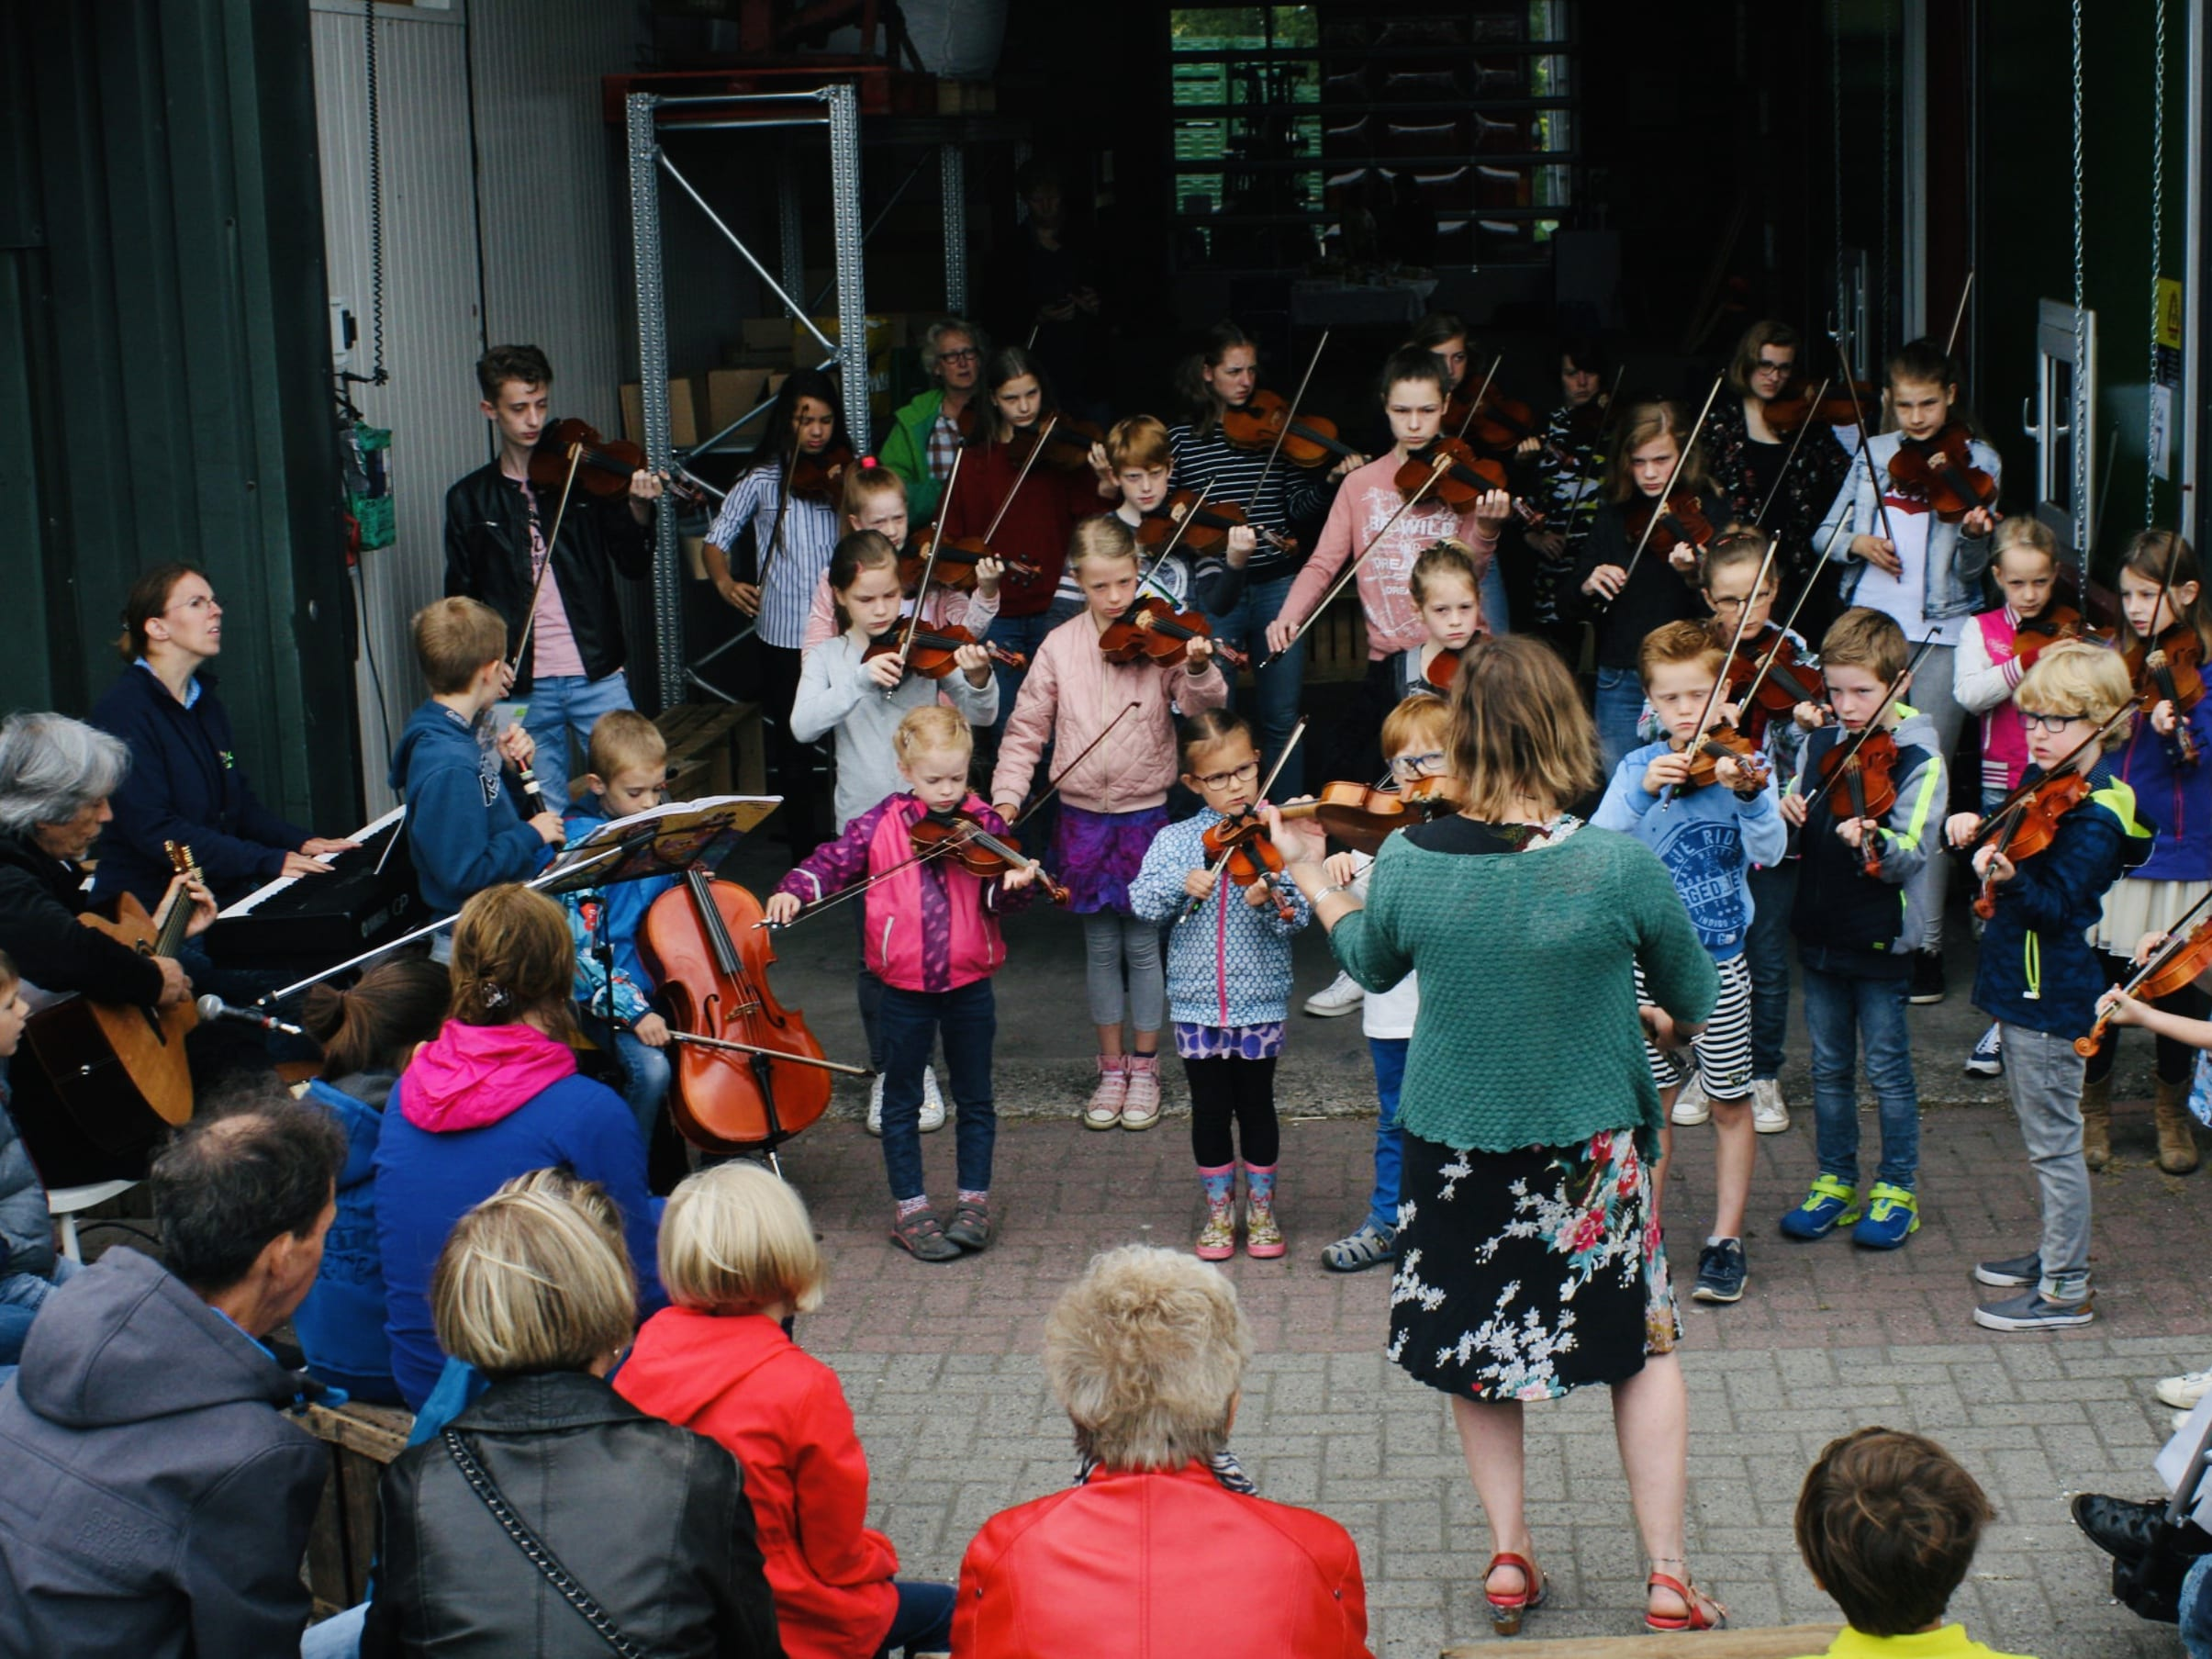 Vioolschool 4Strings Vleuten